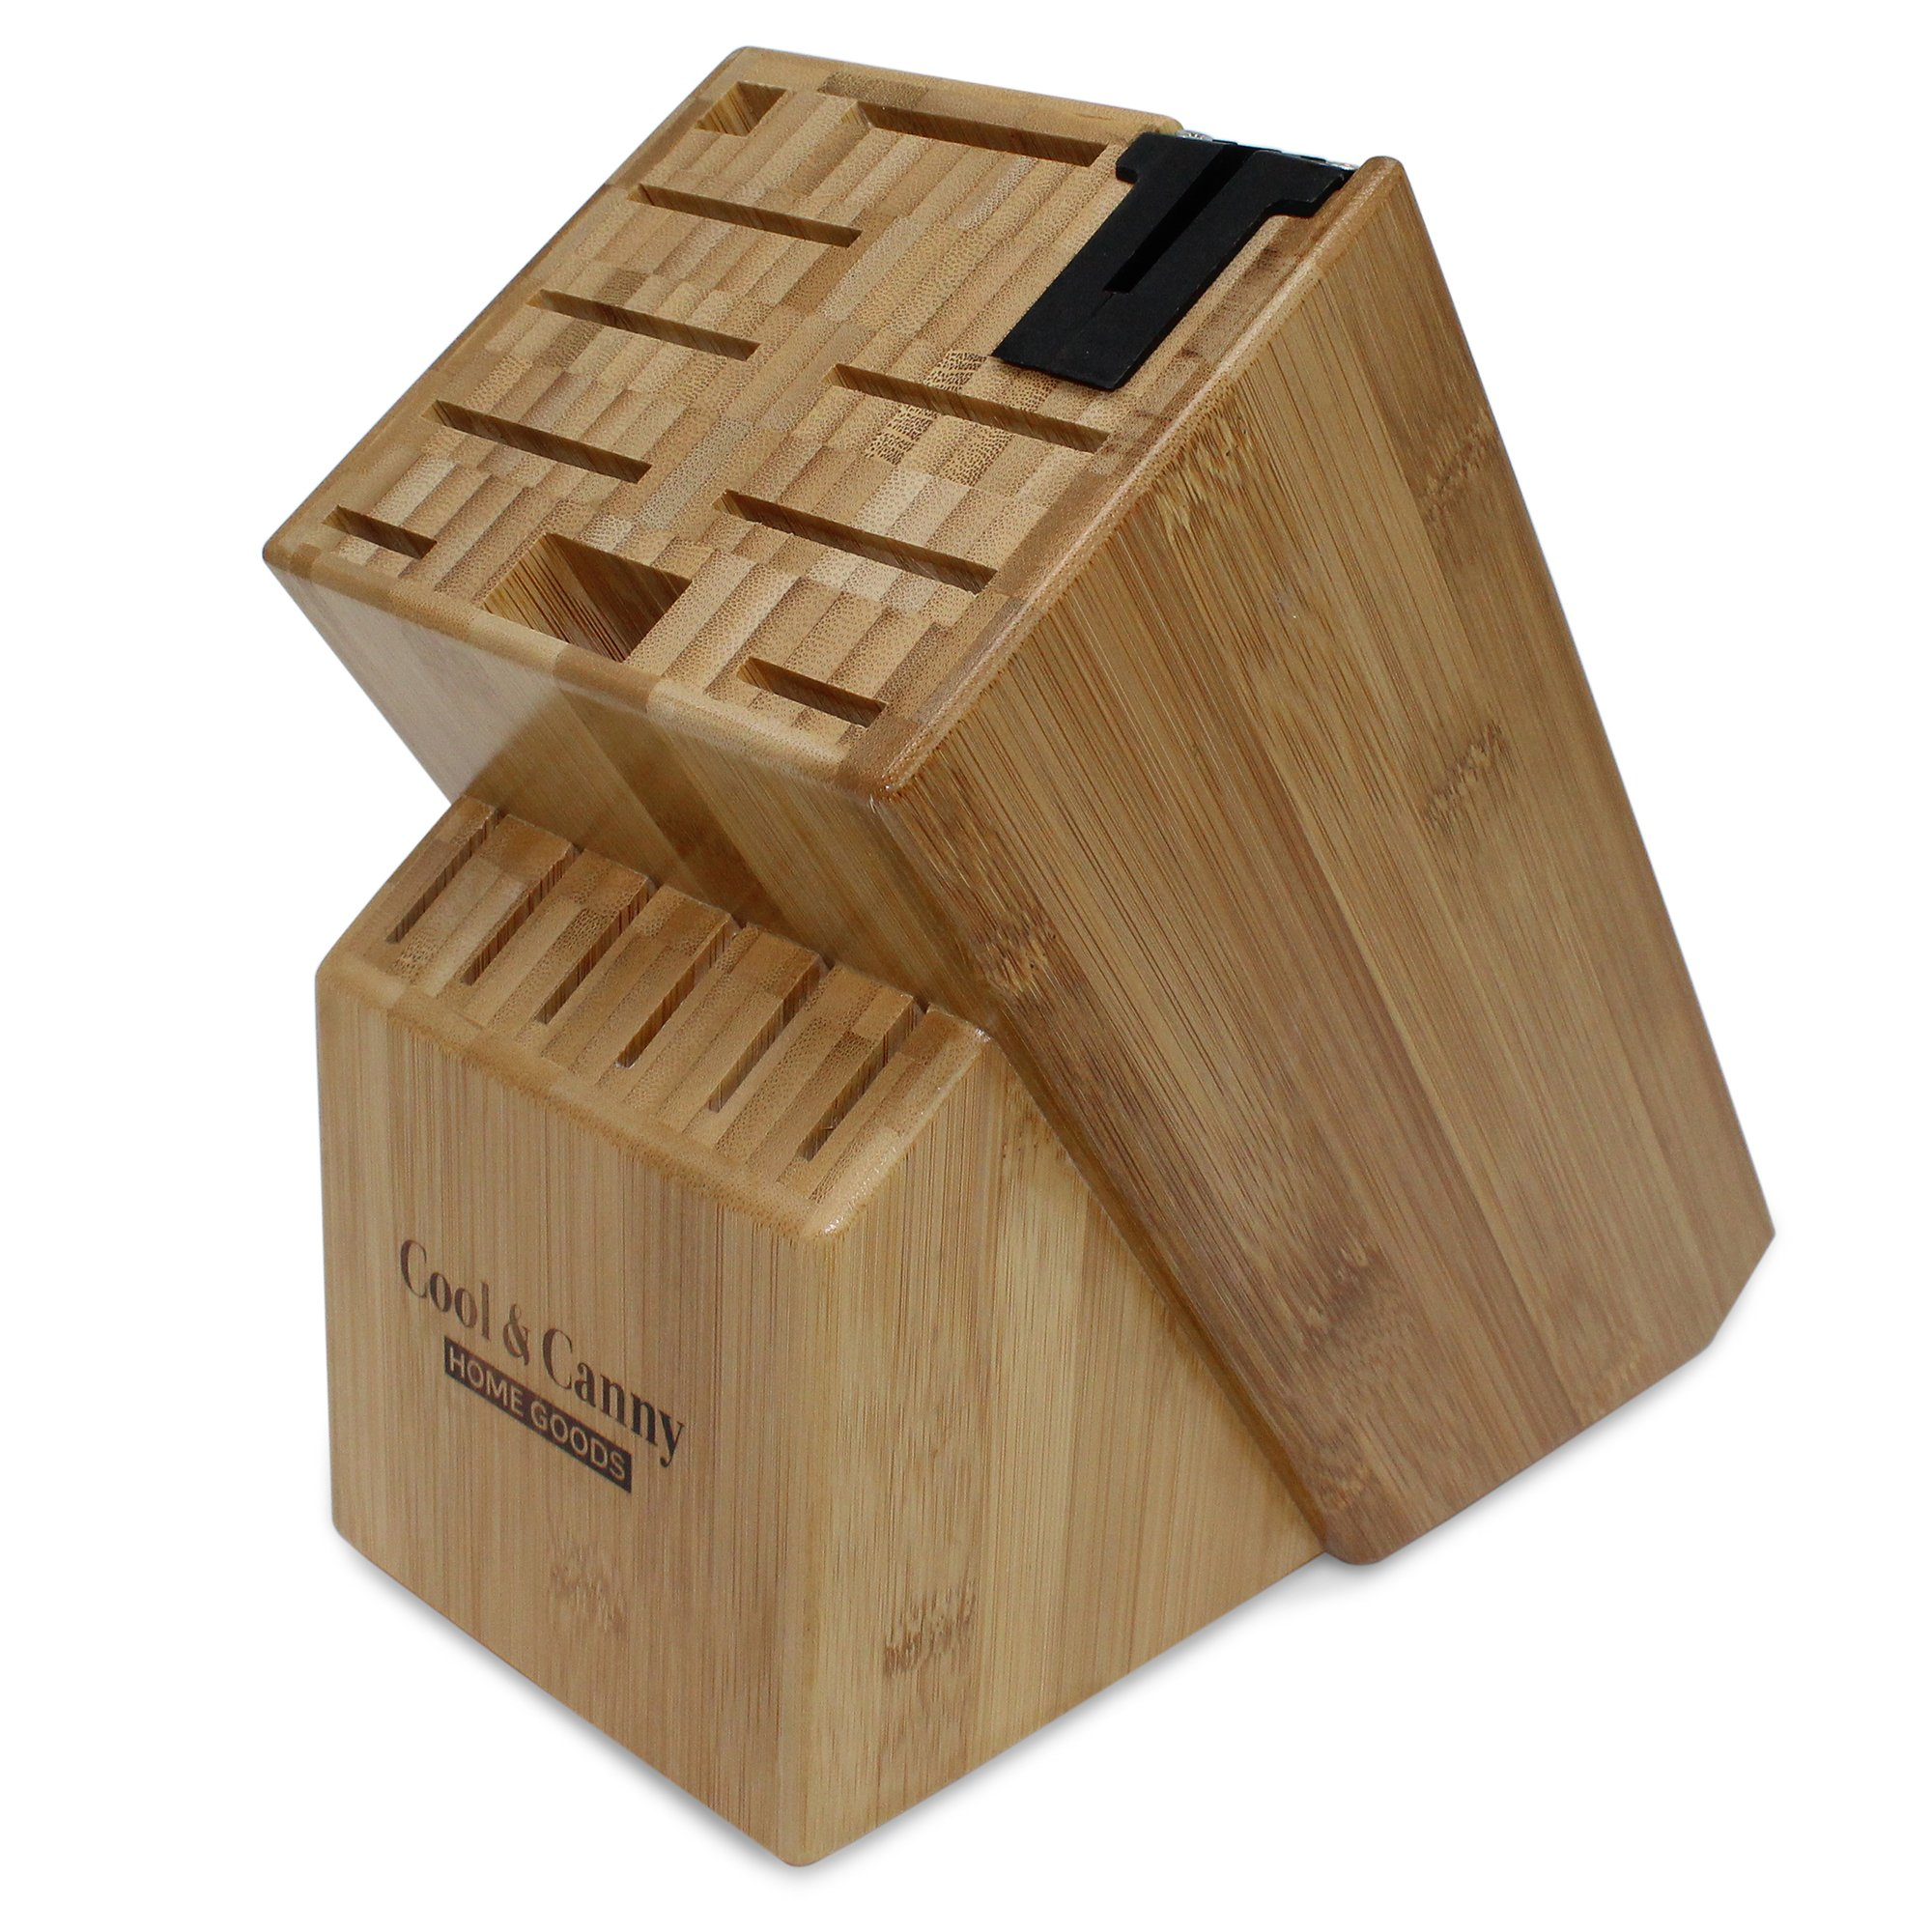 16 Slot Bamboo Universal Knife Block With Knife Sharpener by Cool & Canny